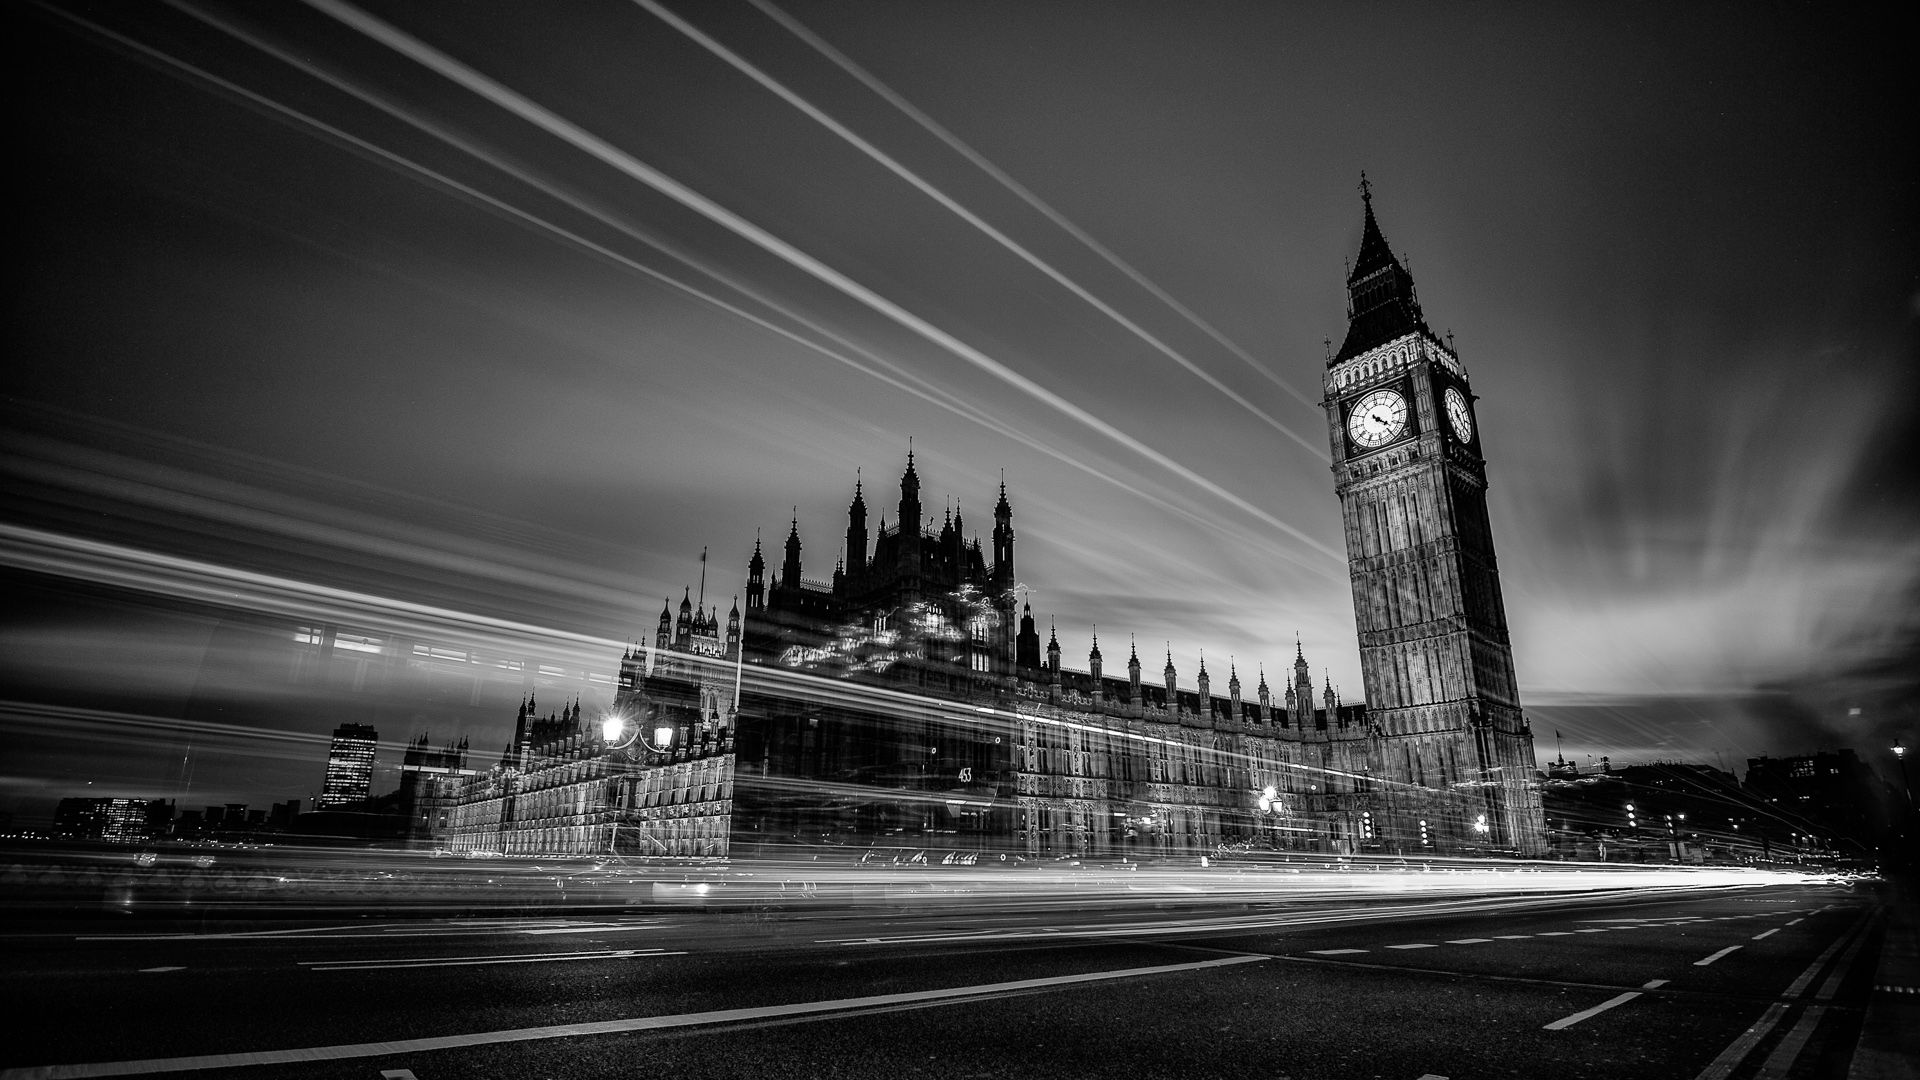 21 Classic Black White Beautiful London Wallpaper In 2020 London Wallpaper White Wallpaper Black And White Wallpaper